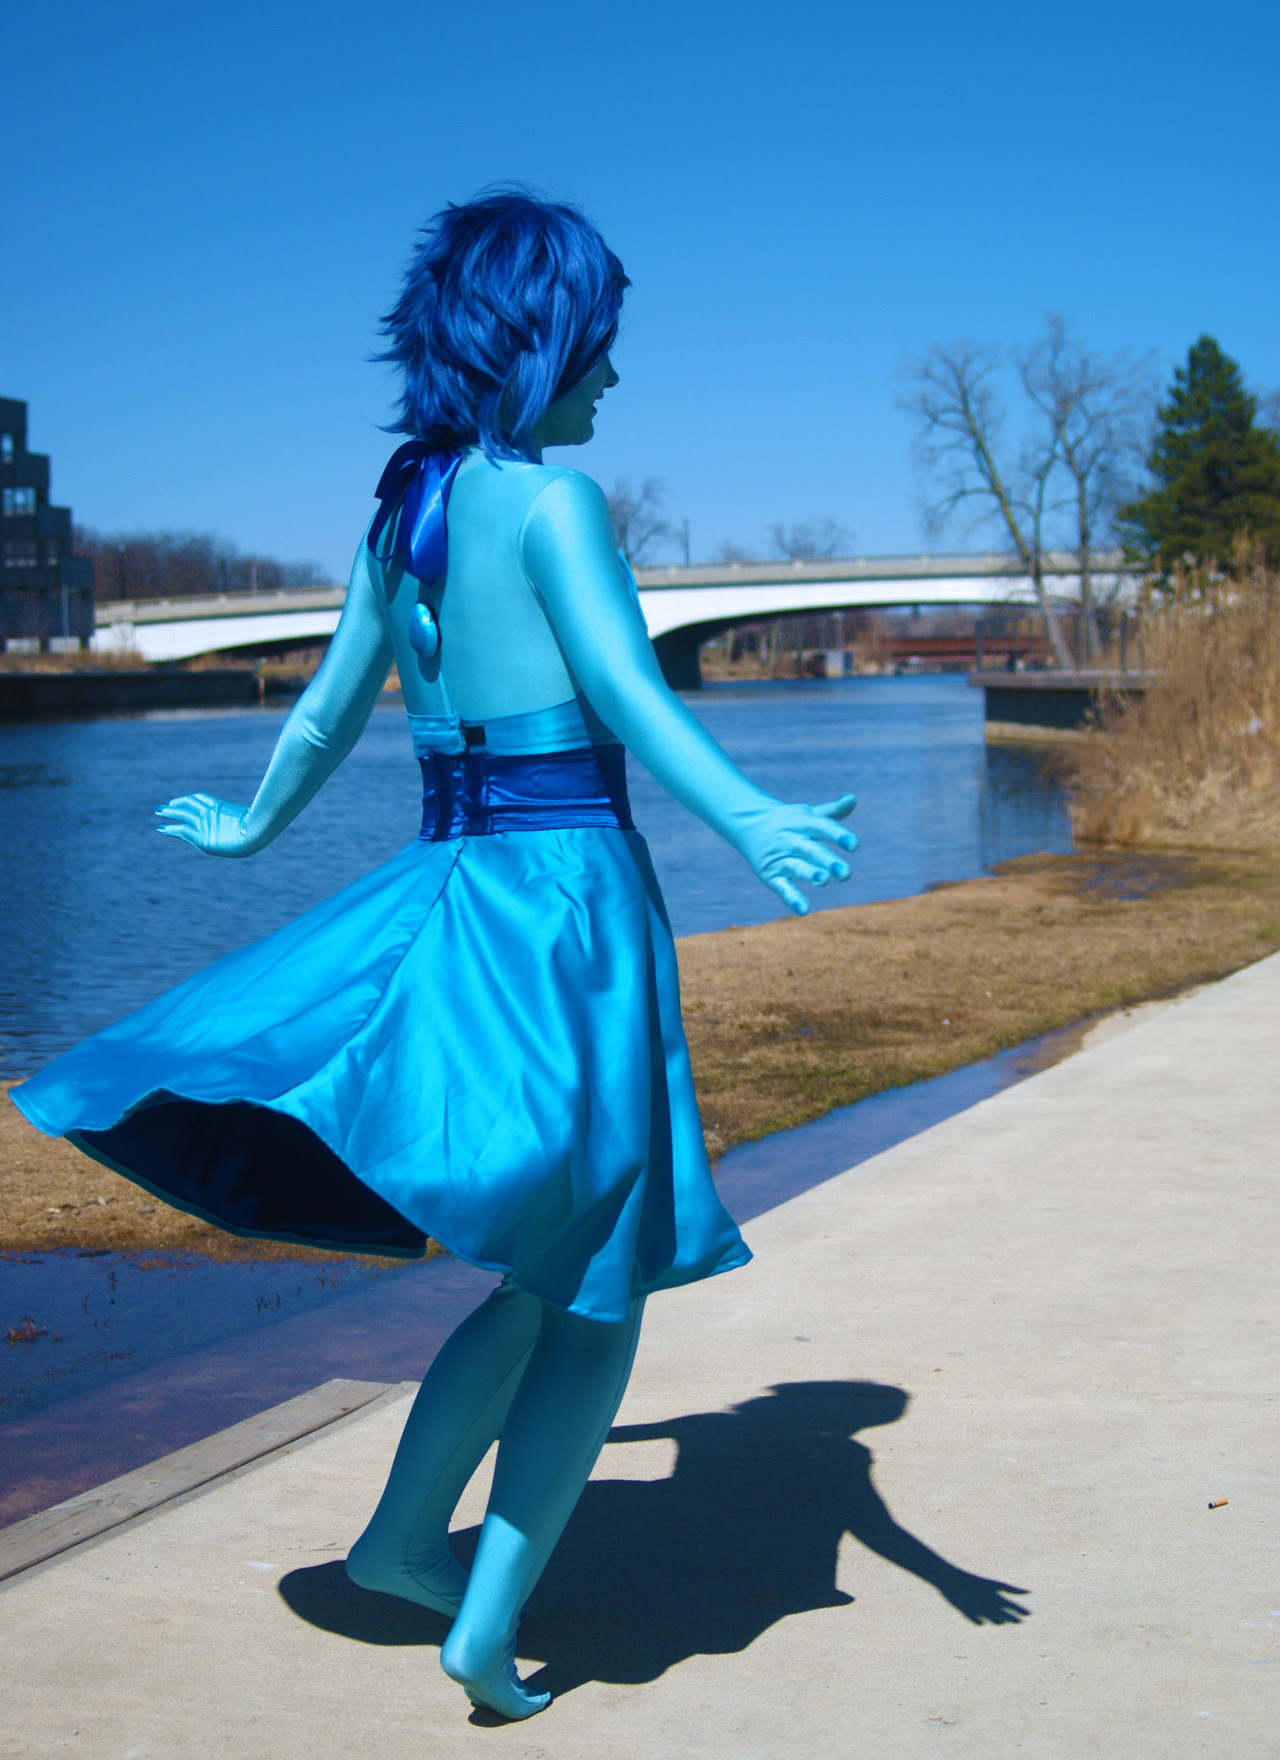 Photos from my Shutocon 2015 photoshoot with kittleimp! Thanks again!